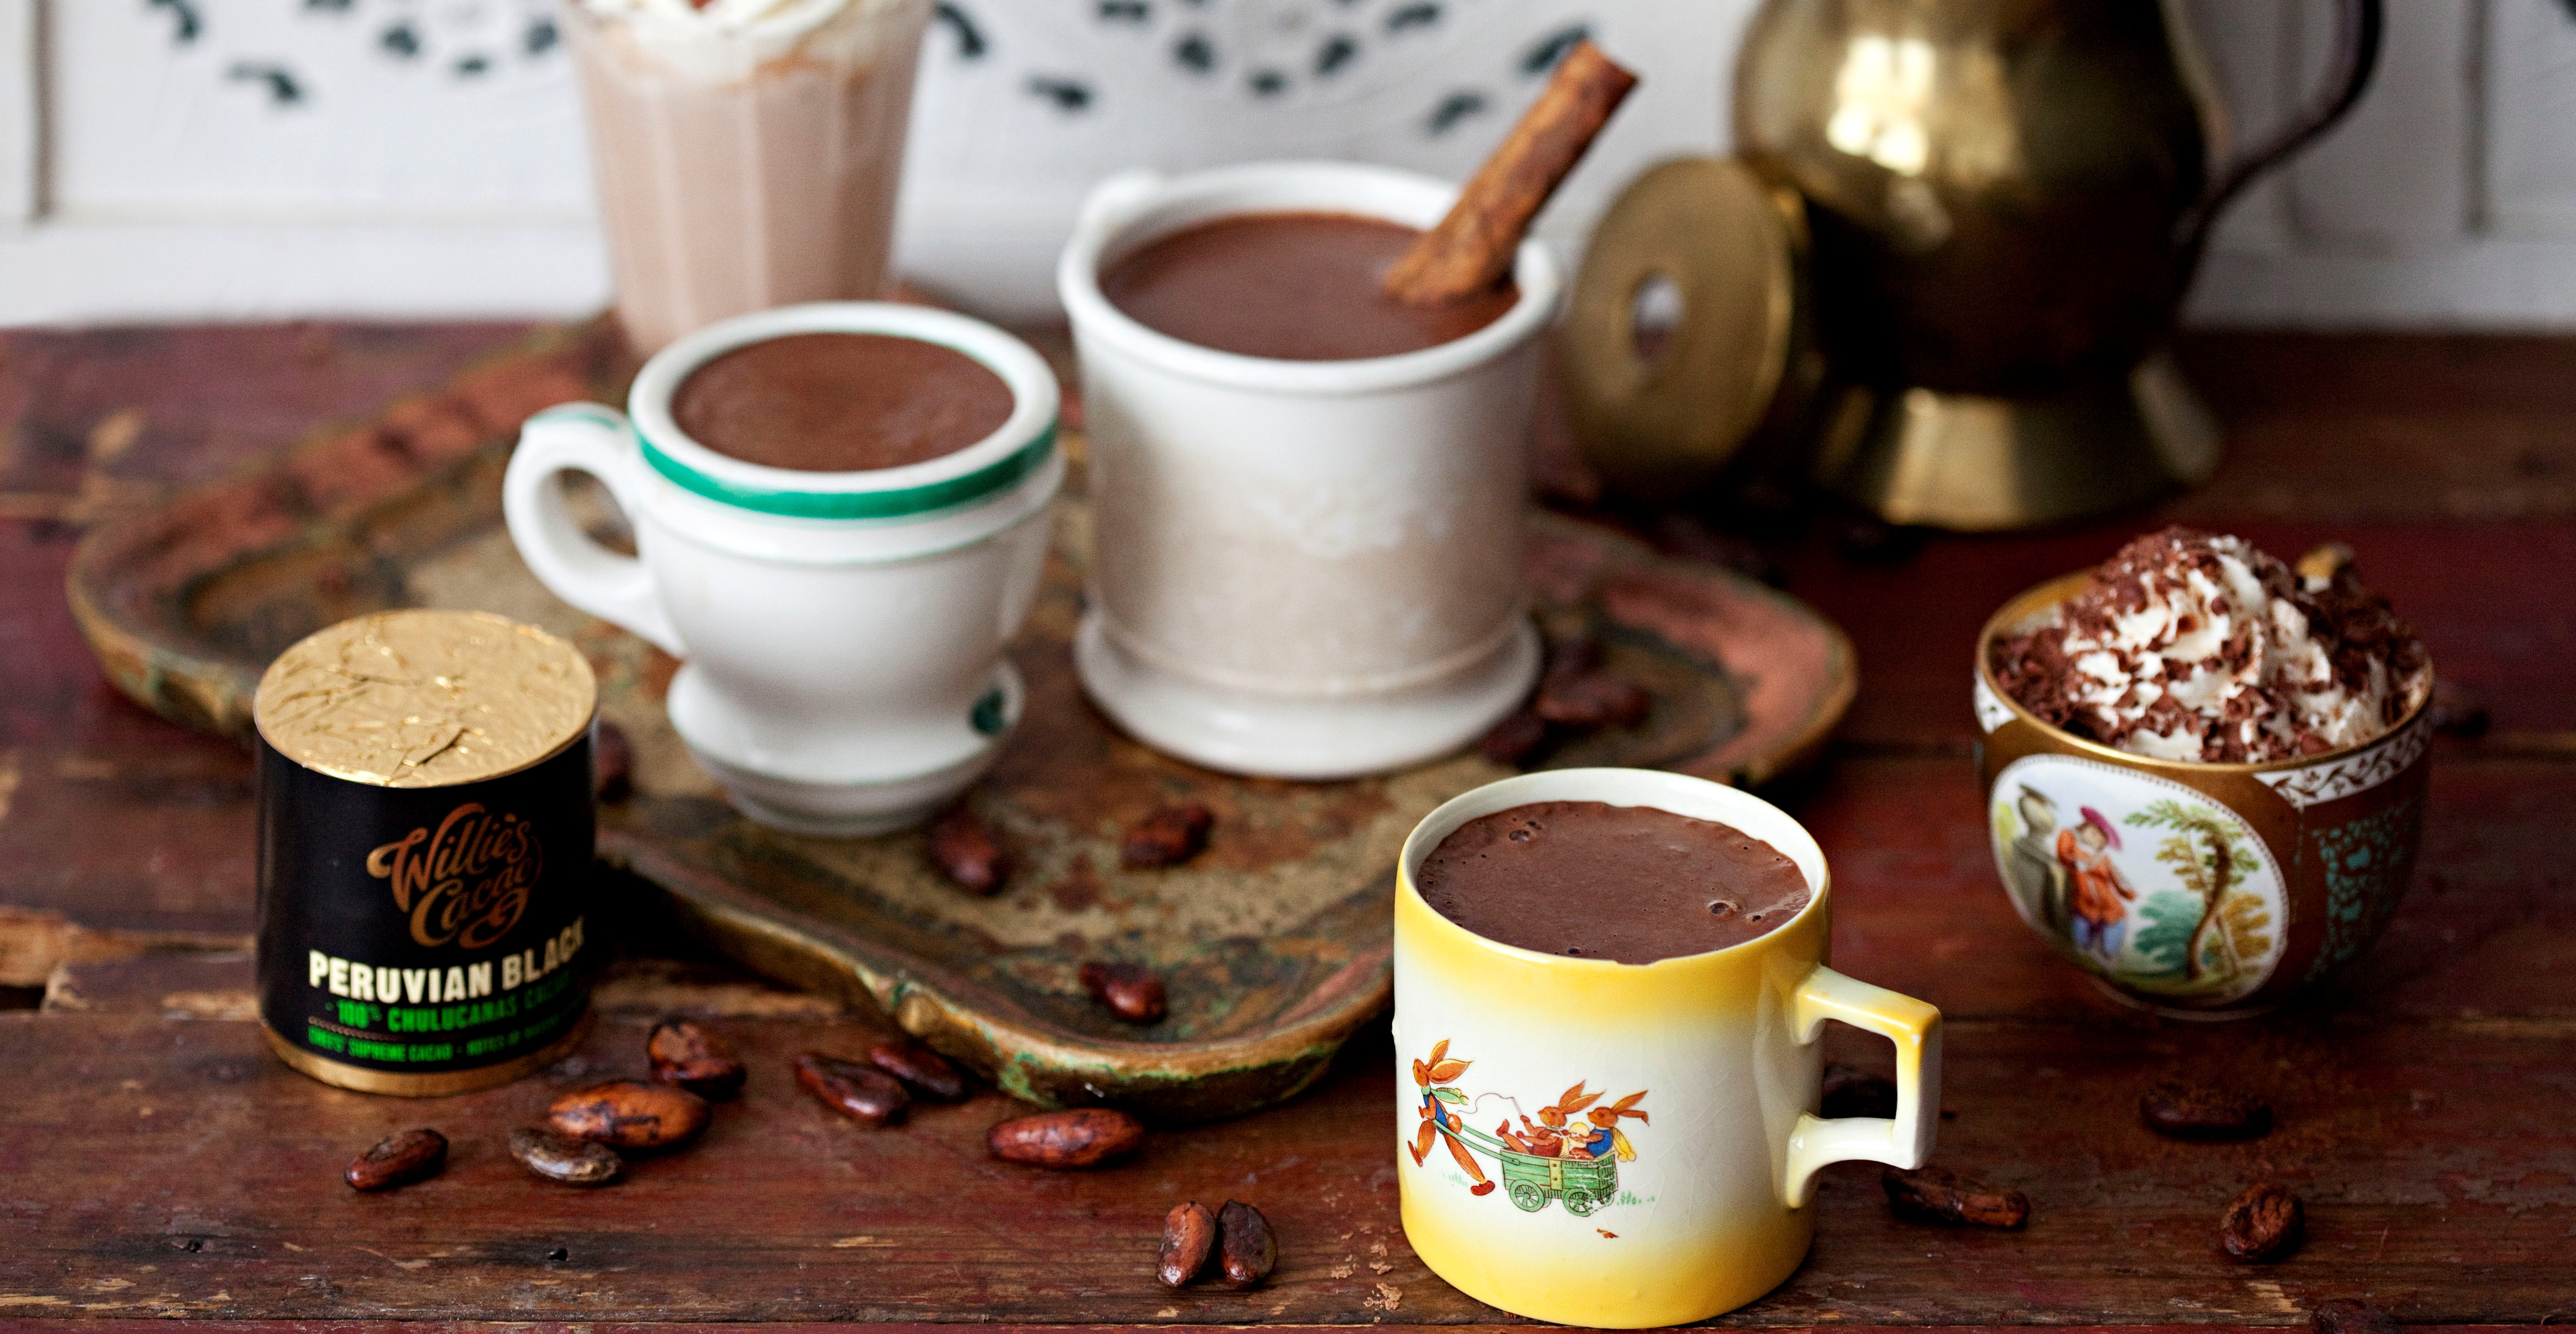 Hot-Chocolate-15-2